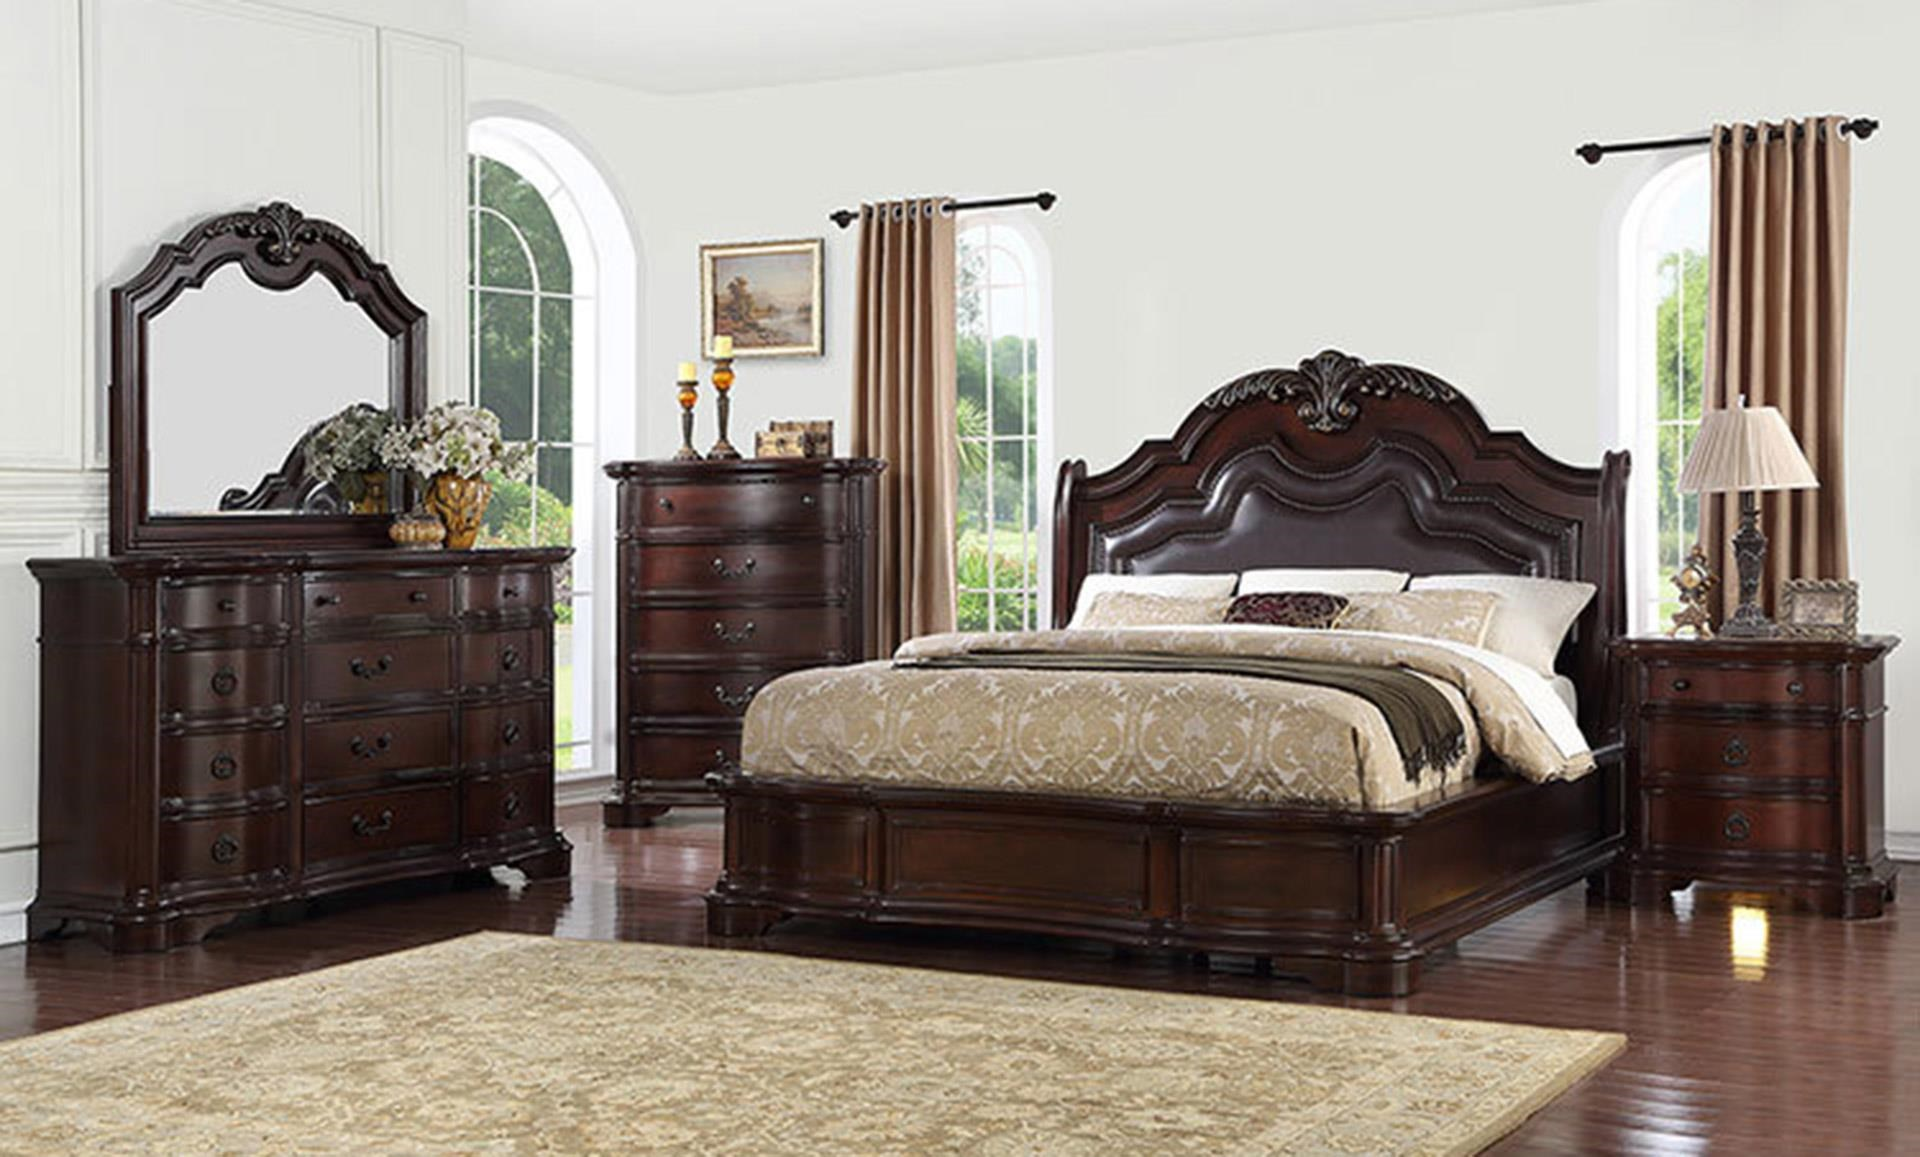 King Bed, Dresser, Mirror, and Nightstand wi